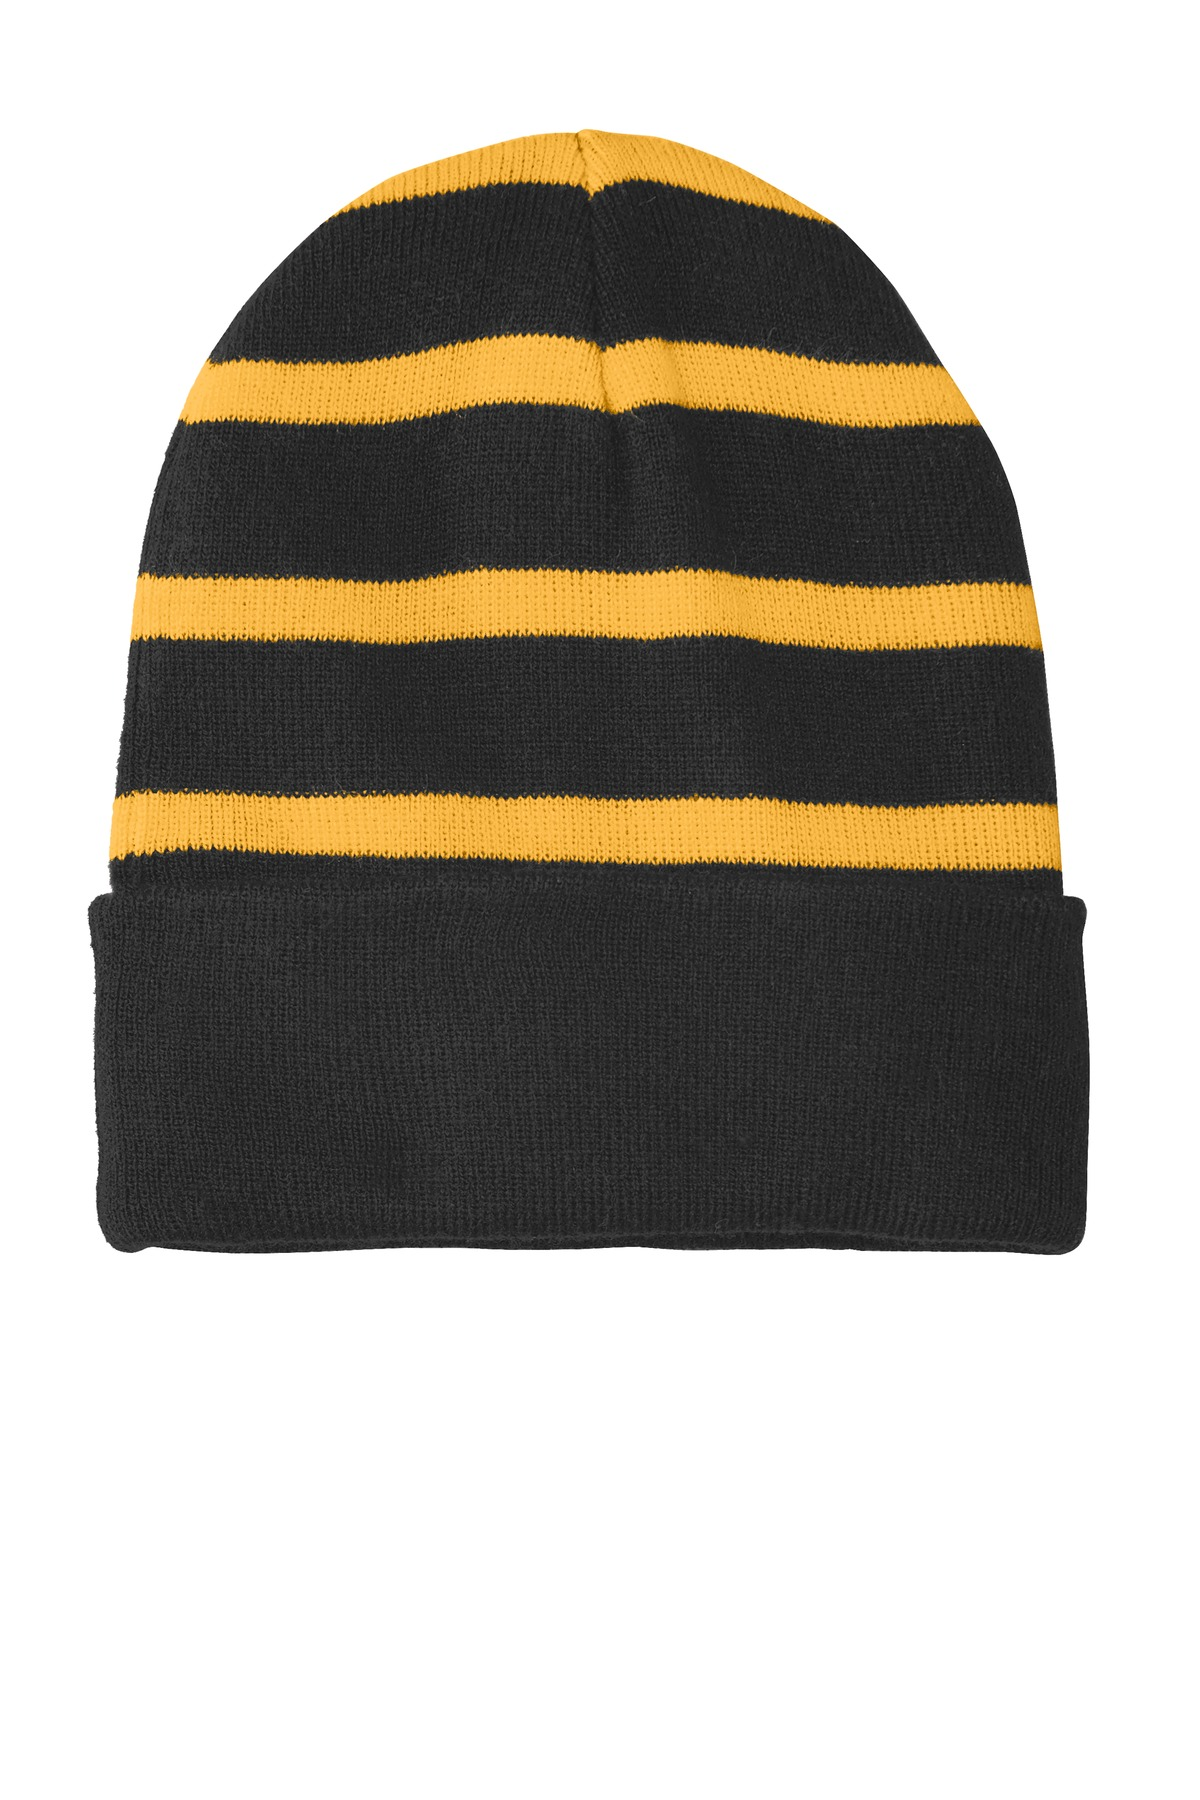 Sport-Tek ®  Striped Beanie with Solid Band. STC31 - Black/ Gold